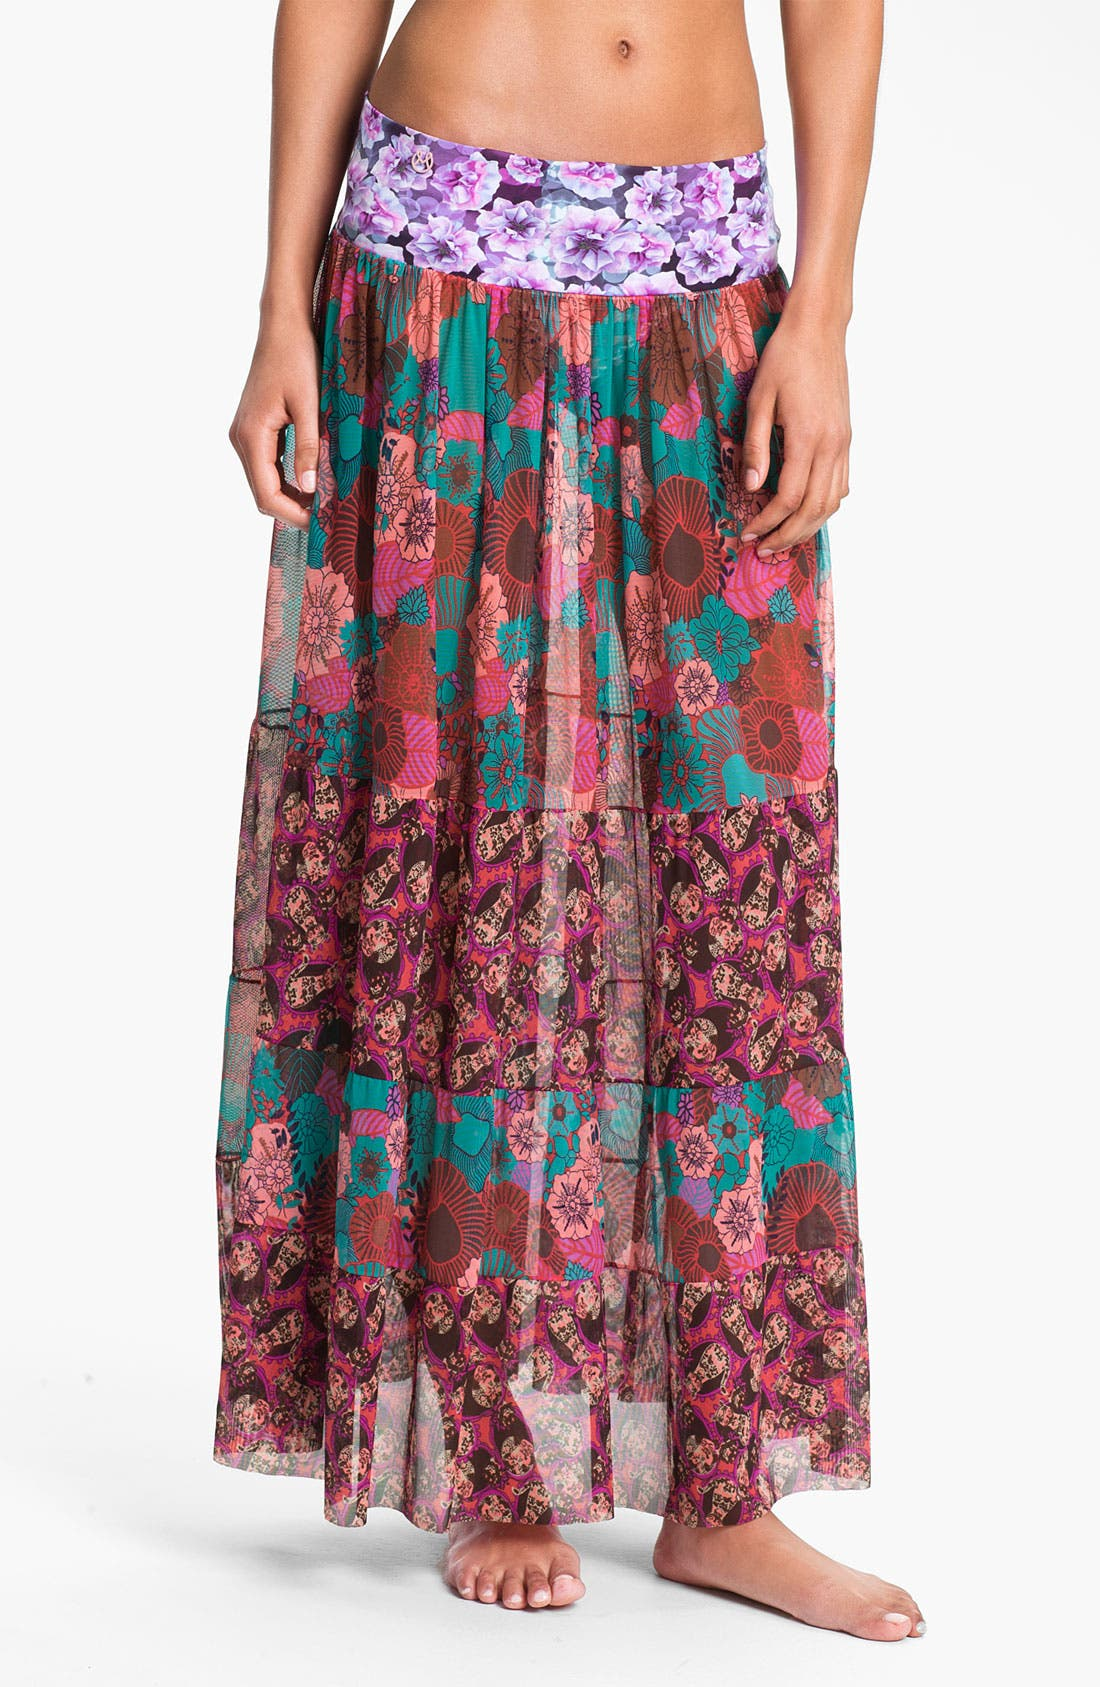 Alternate Image 1 Selected - Maaji 'Cherry Red Glory' Skirt Cover-Up